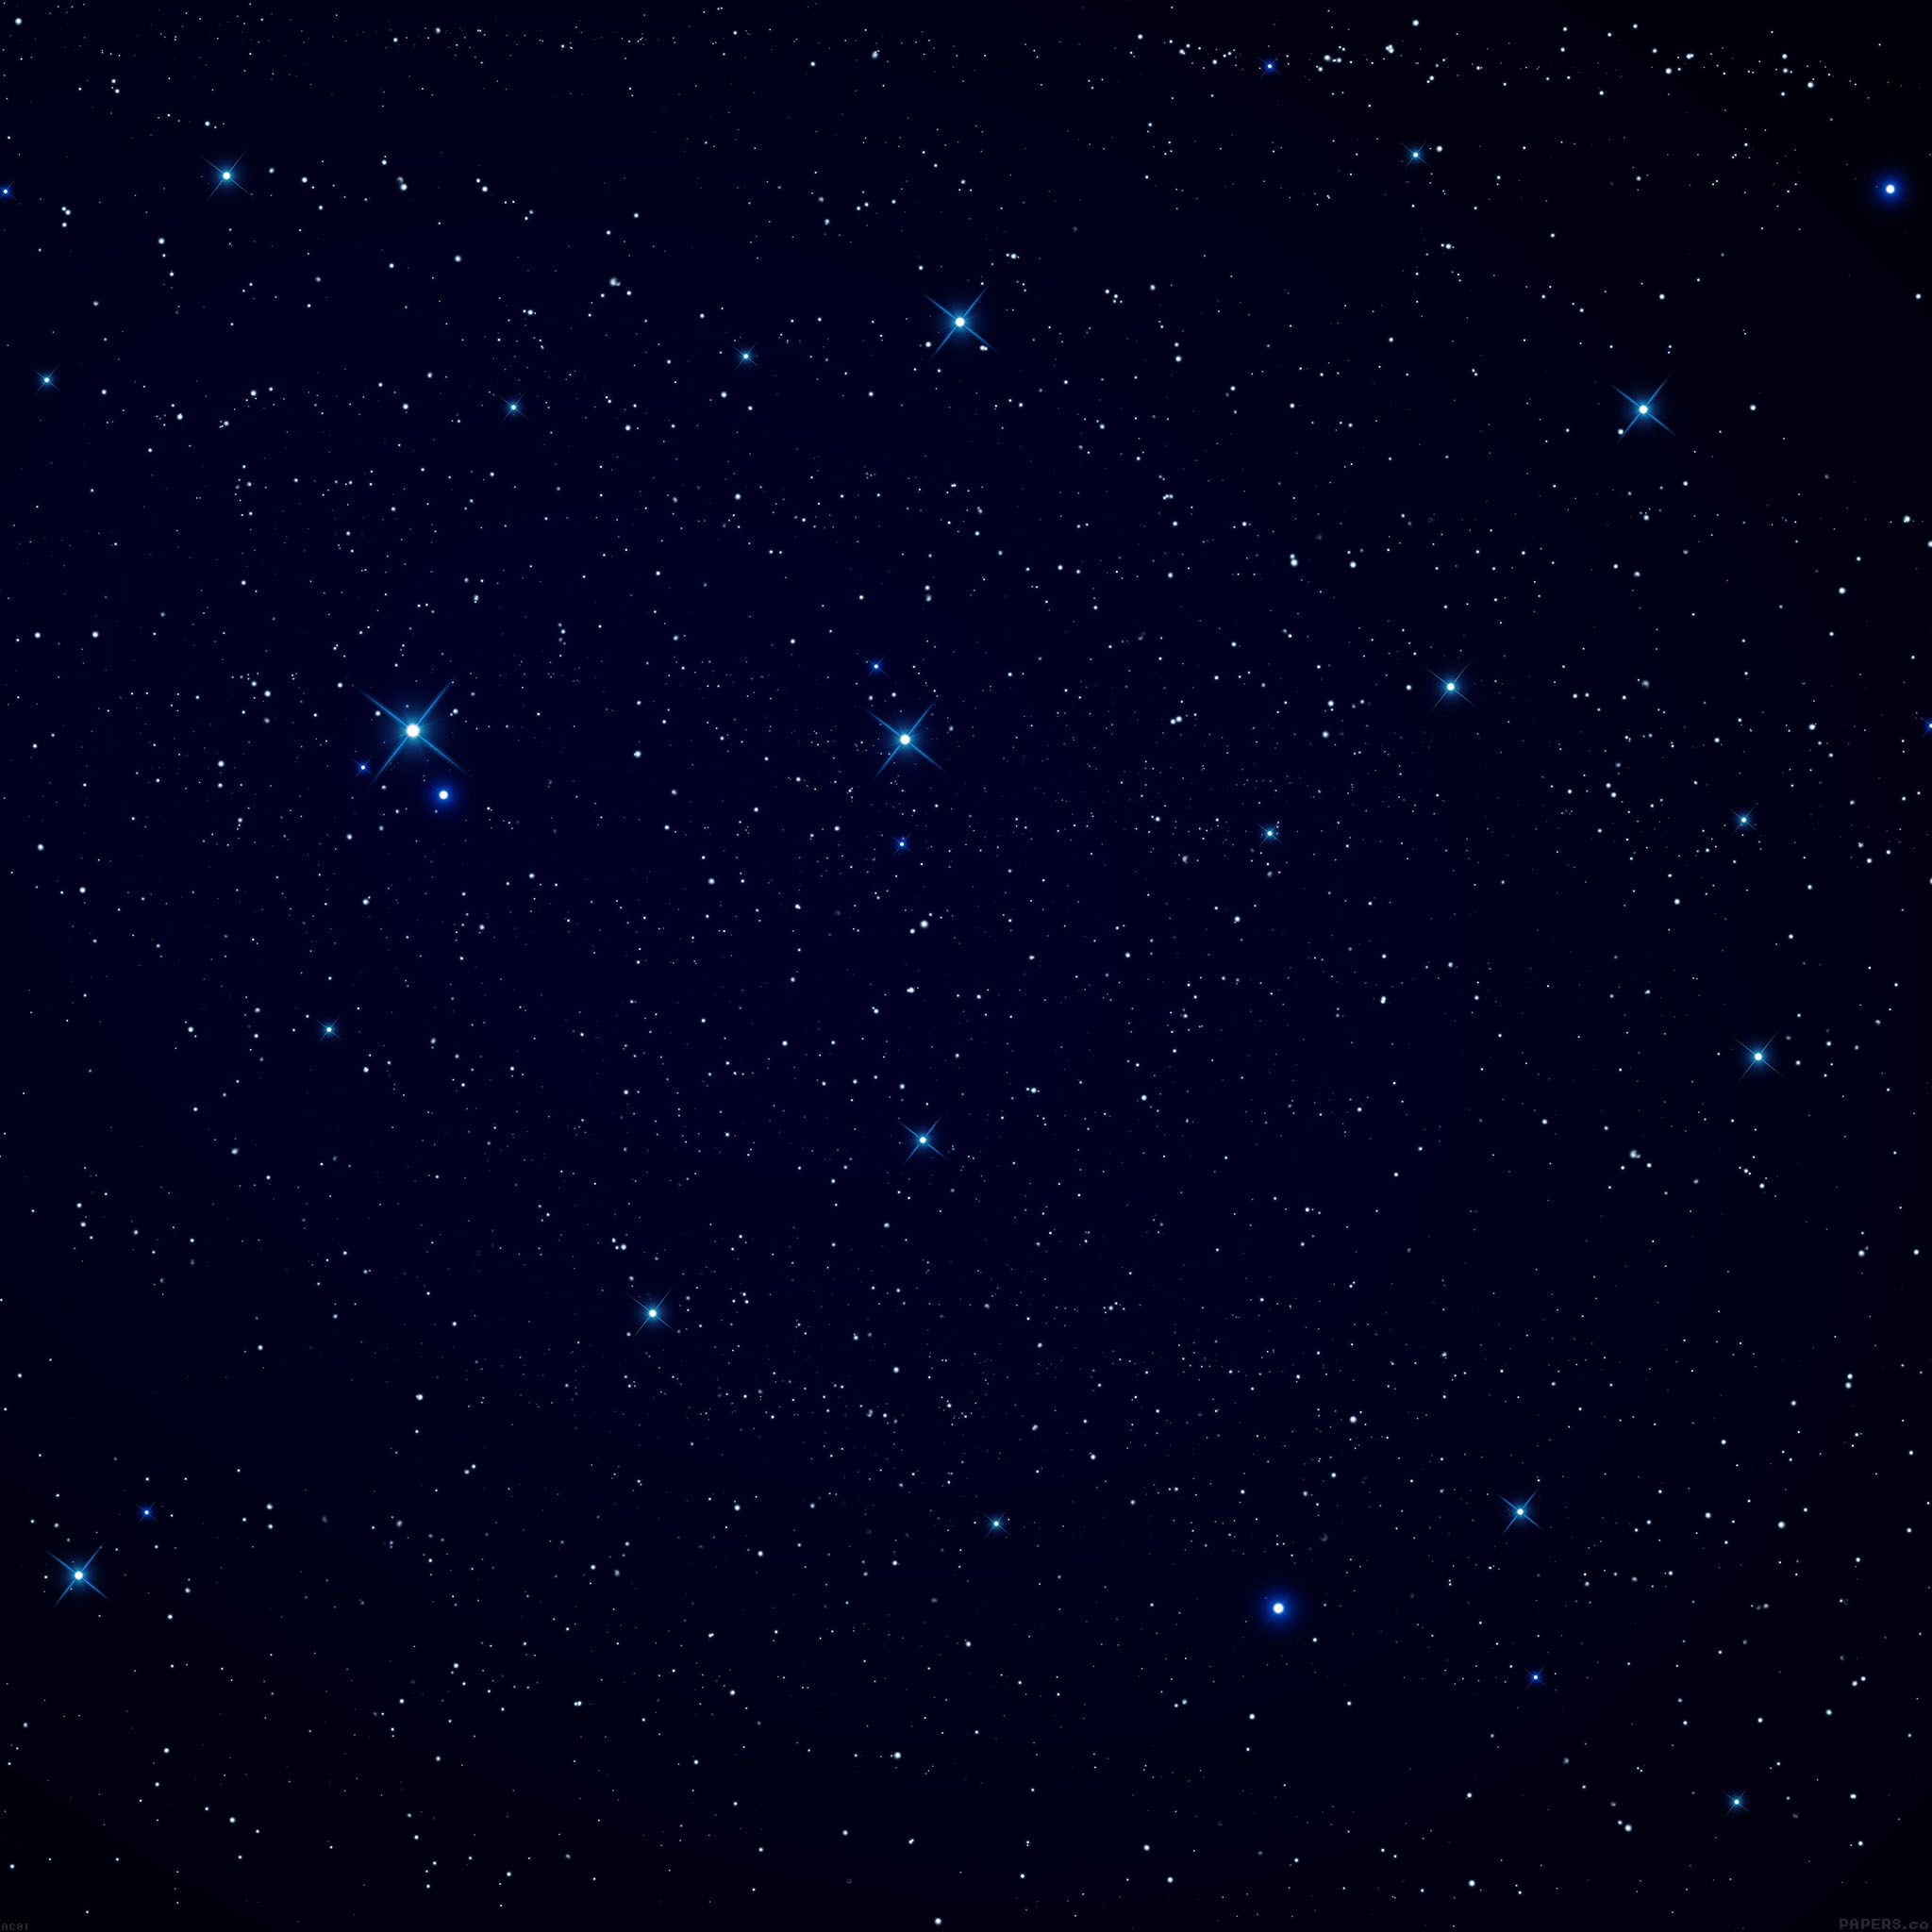 Androidpapers Co Ac01 Wallpaper Space Star Night Dark